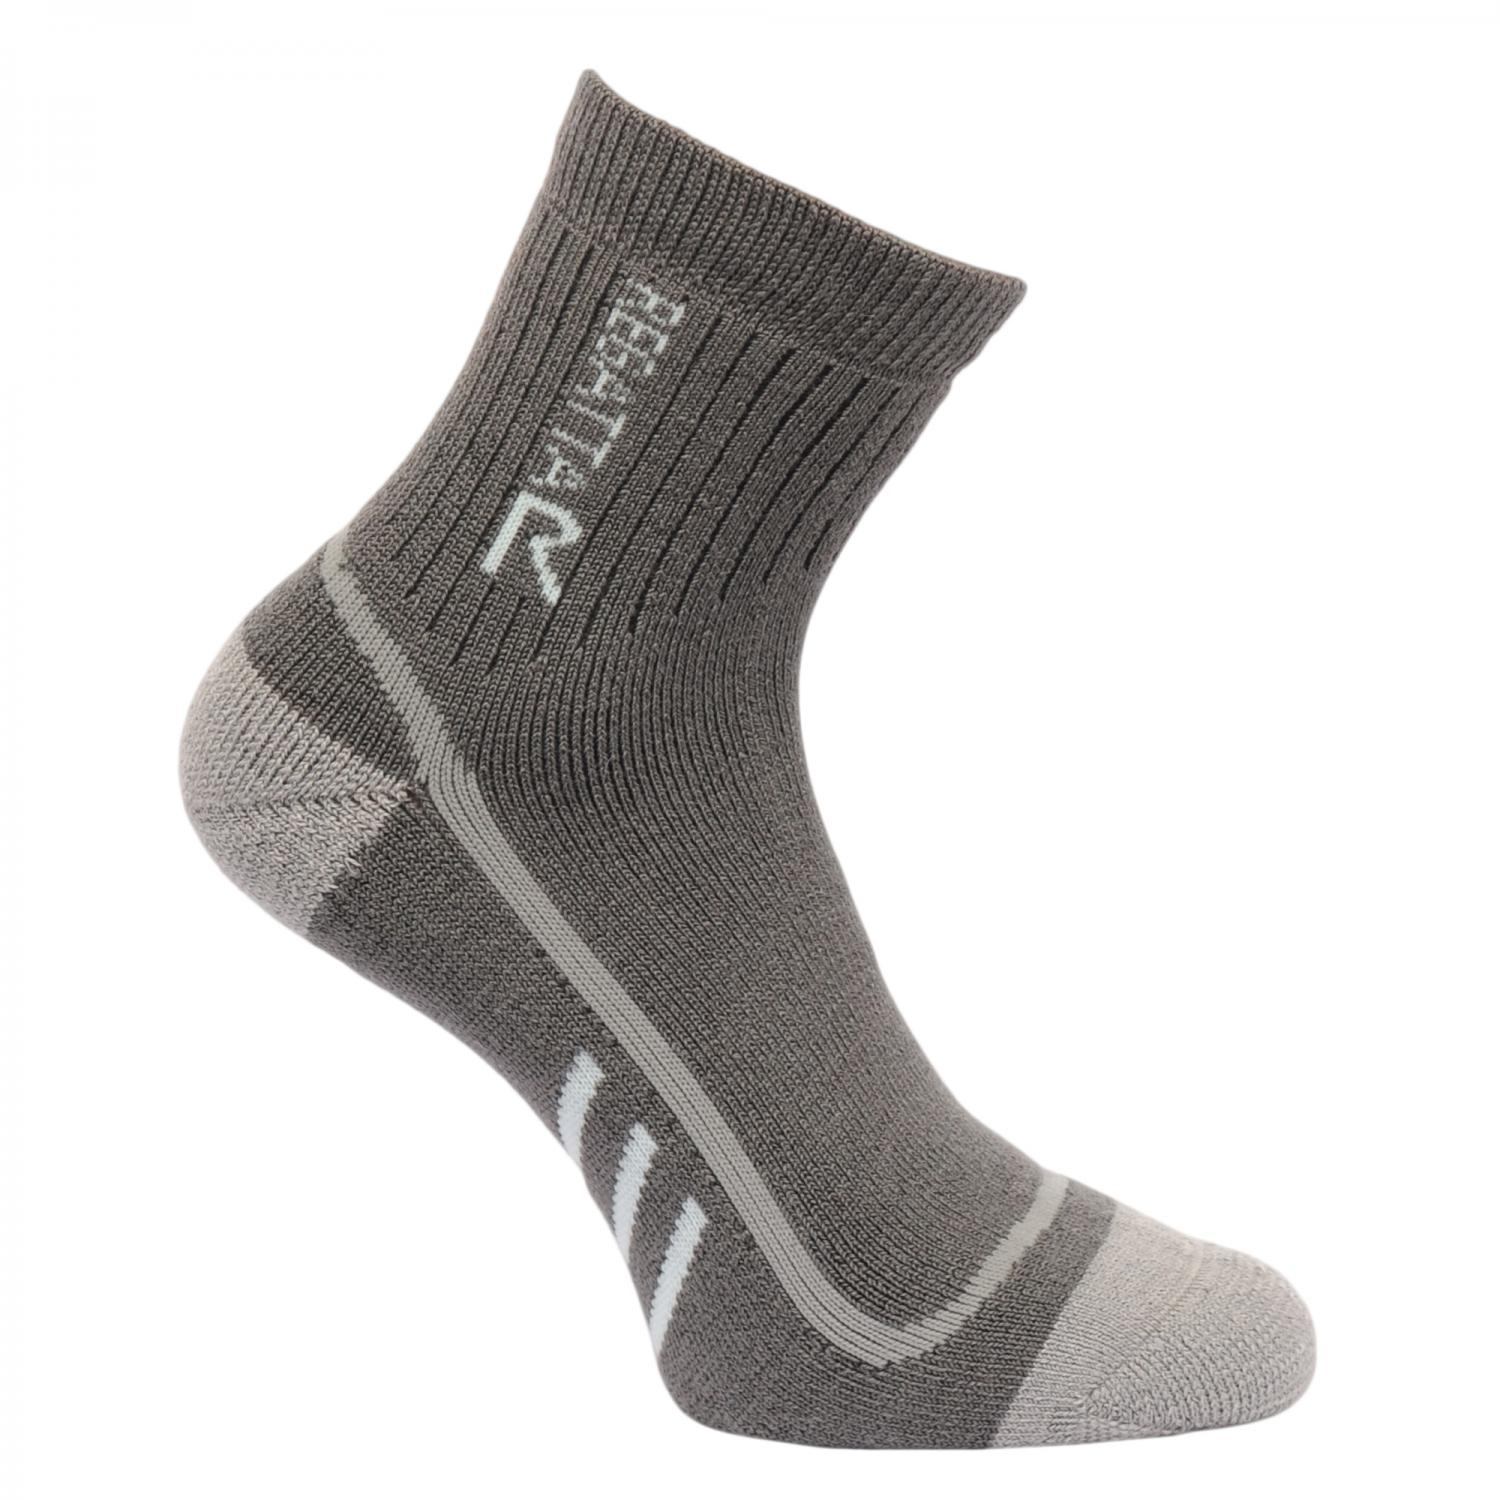 Womens 3 Season Heavyweight Trek and Trail Socks Granite Yucca